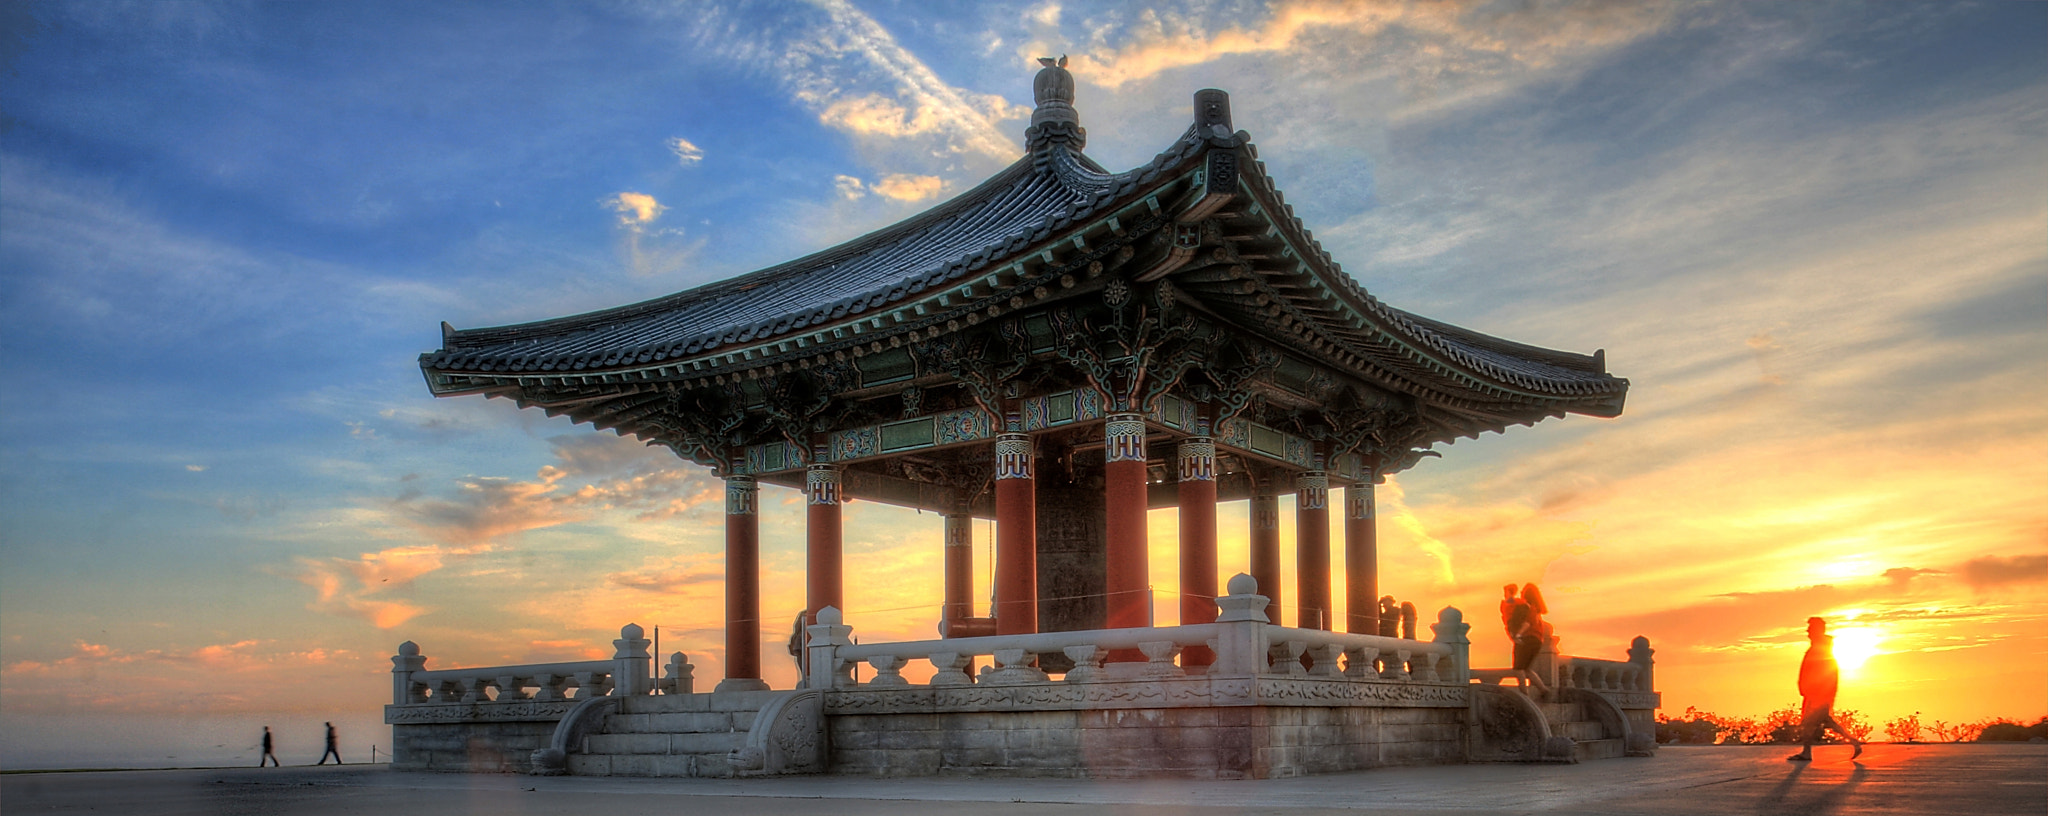 Photograph The Korean Bell of Friendship by Biju Chandroth on 500px